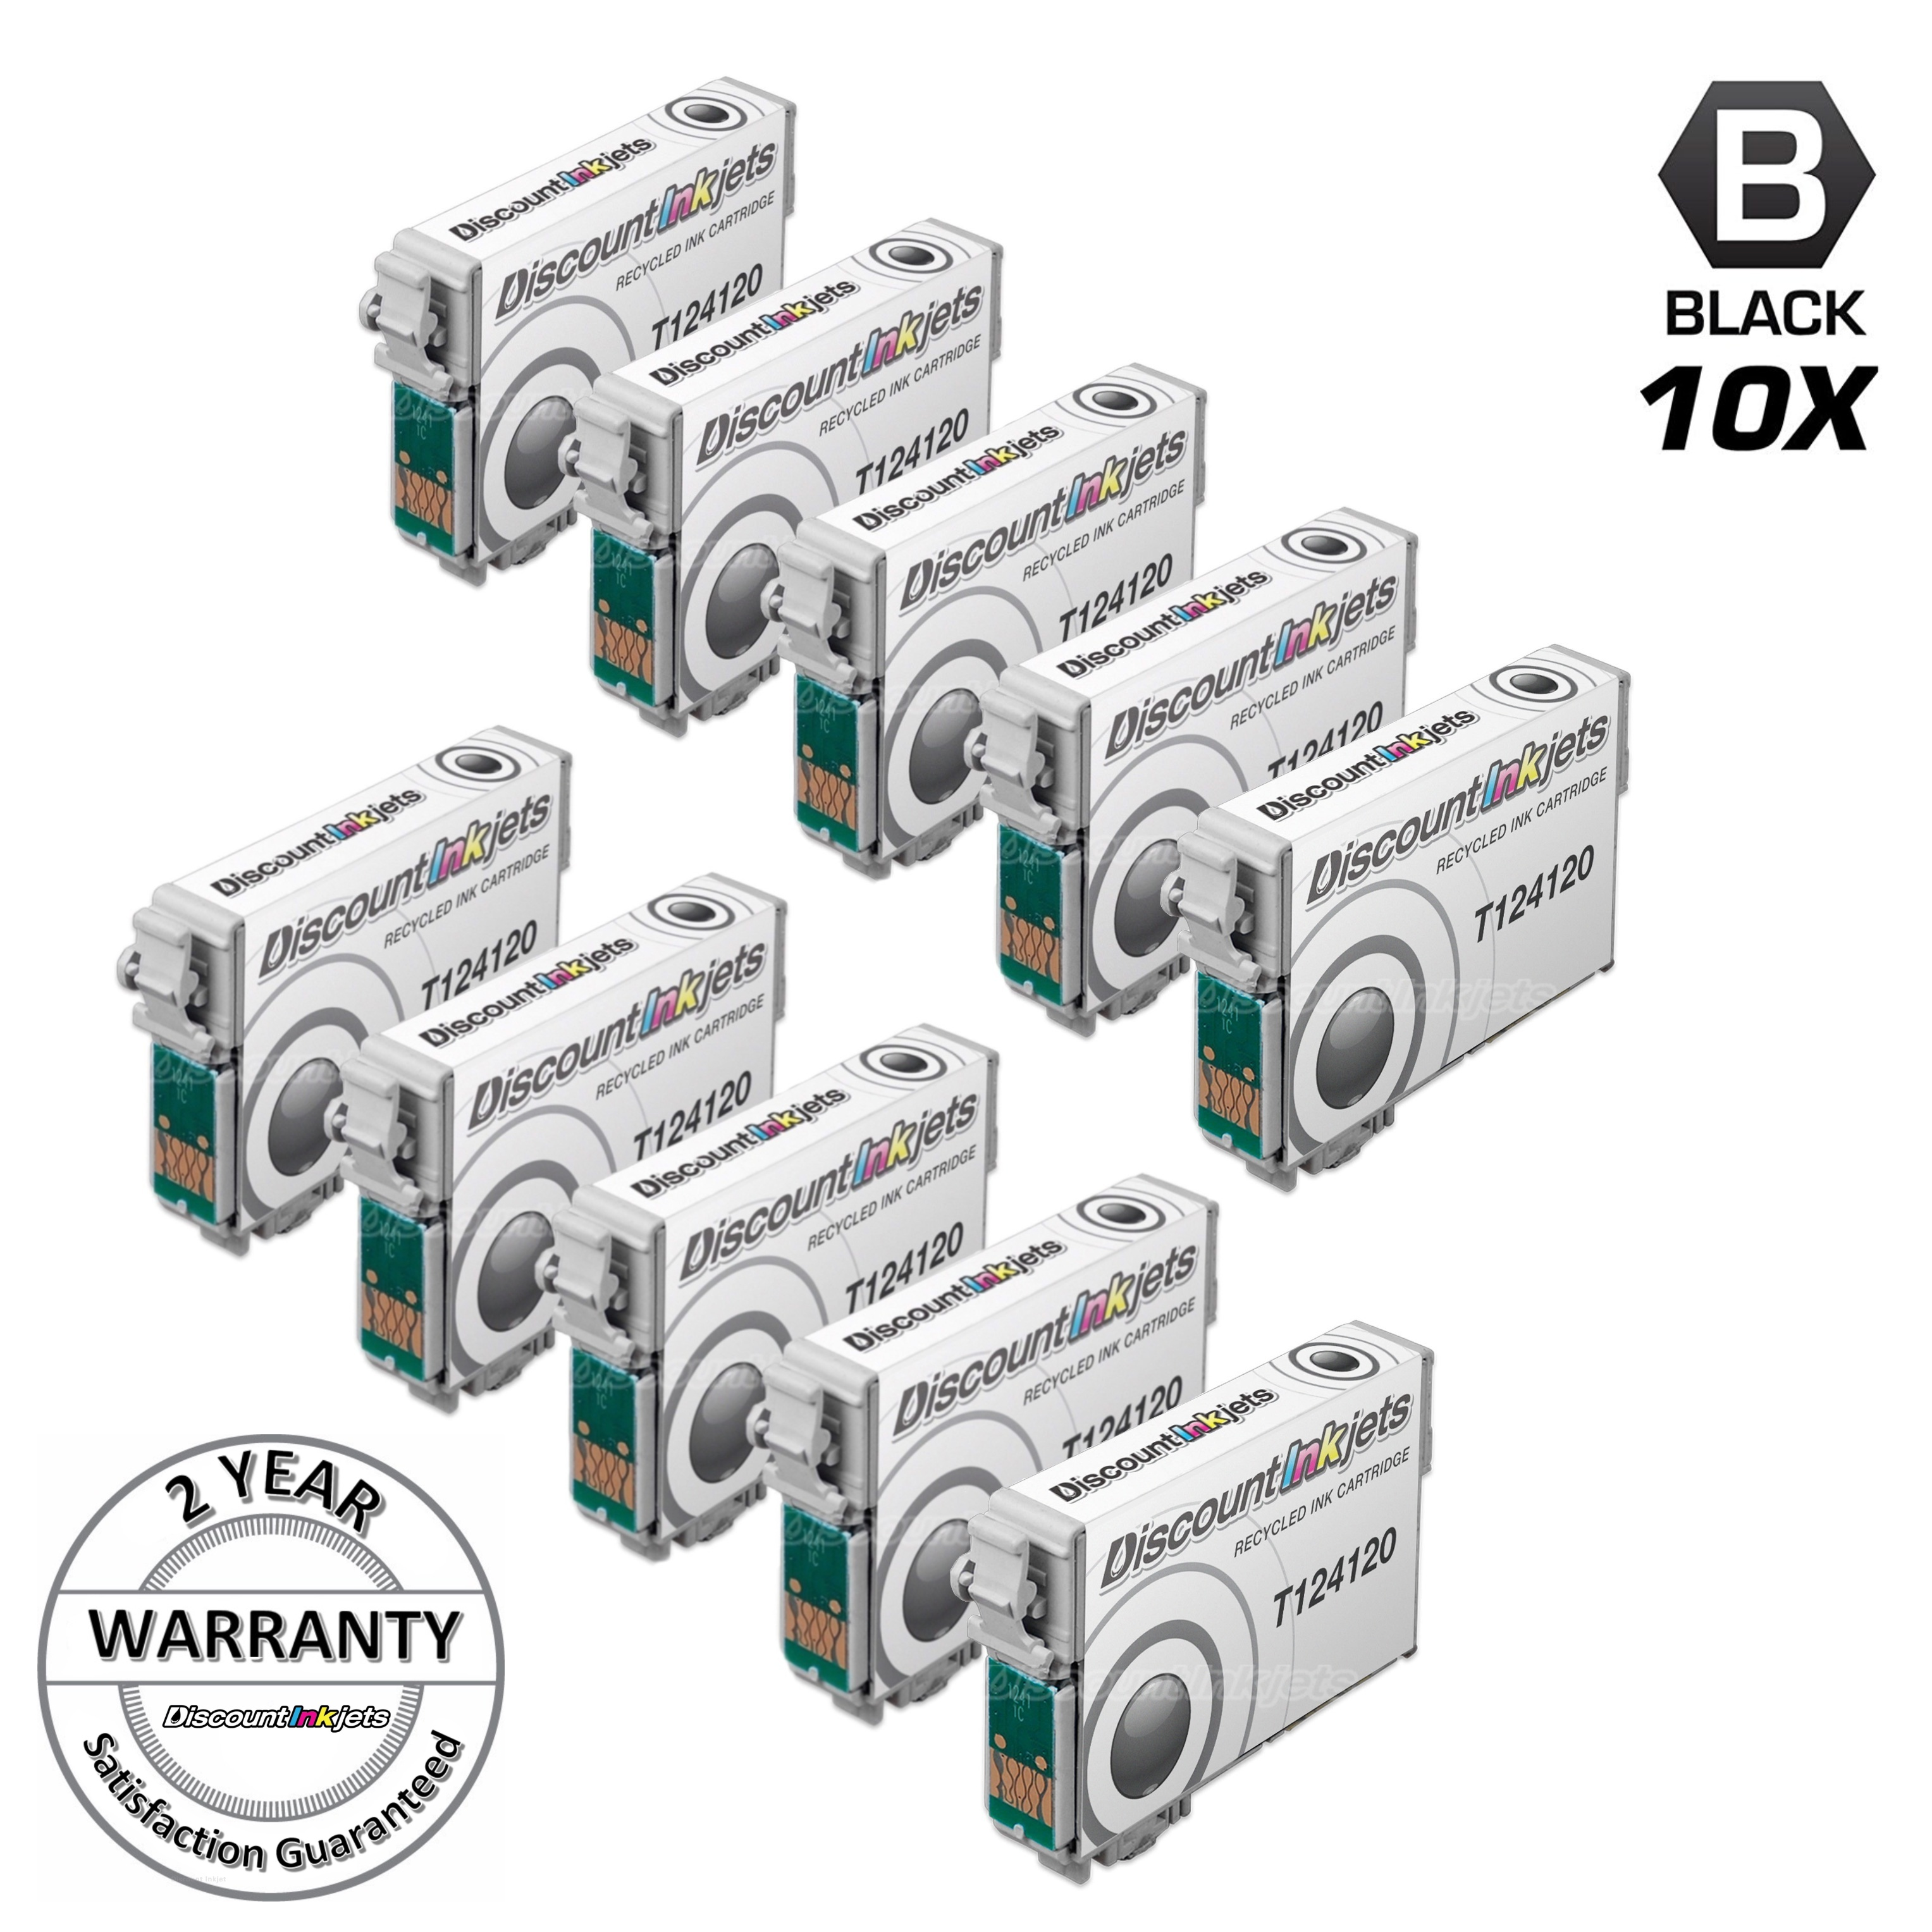 10pk BLACK T124120 T1241 Pigment ink cartridge for 124